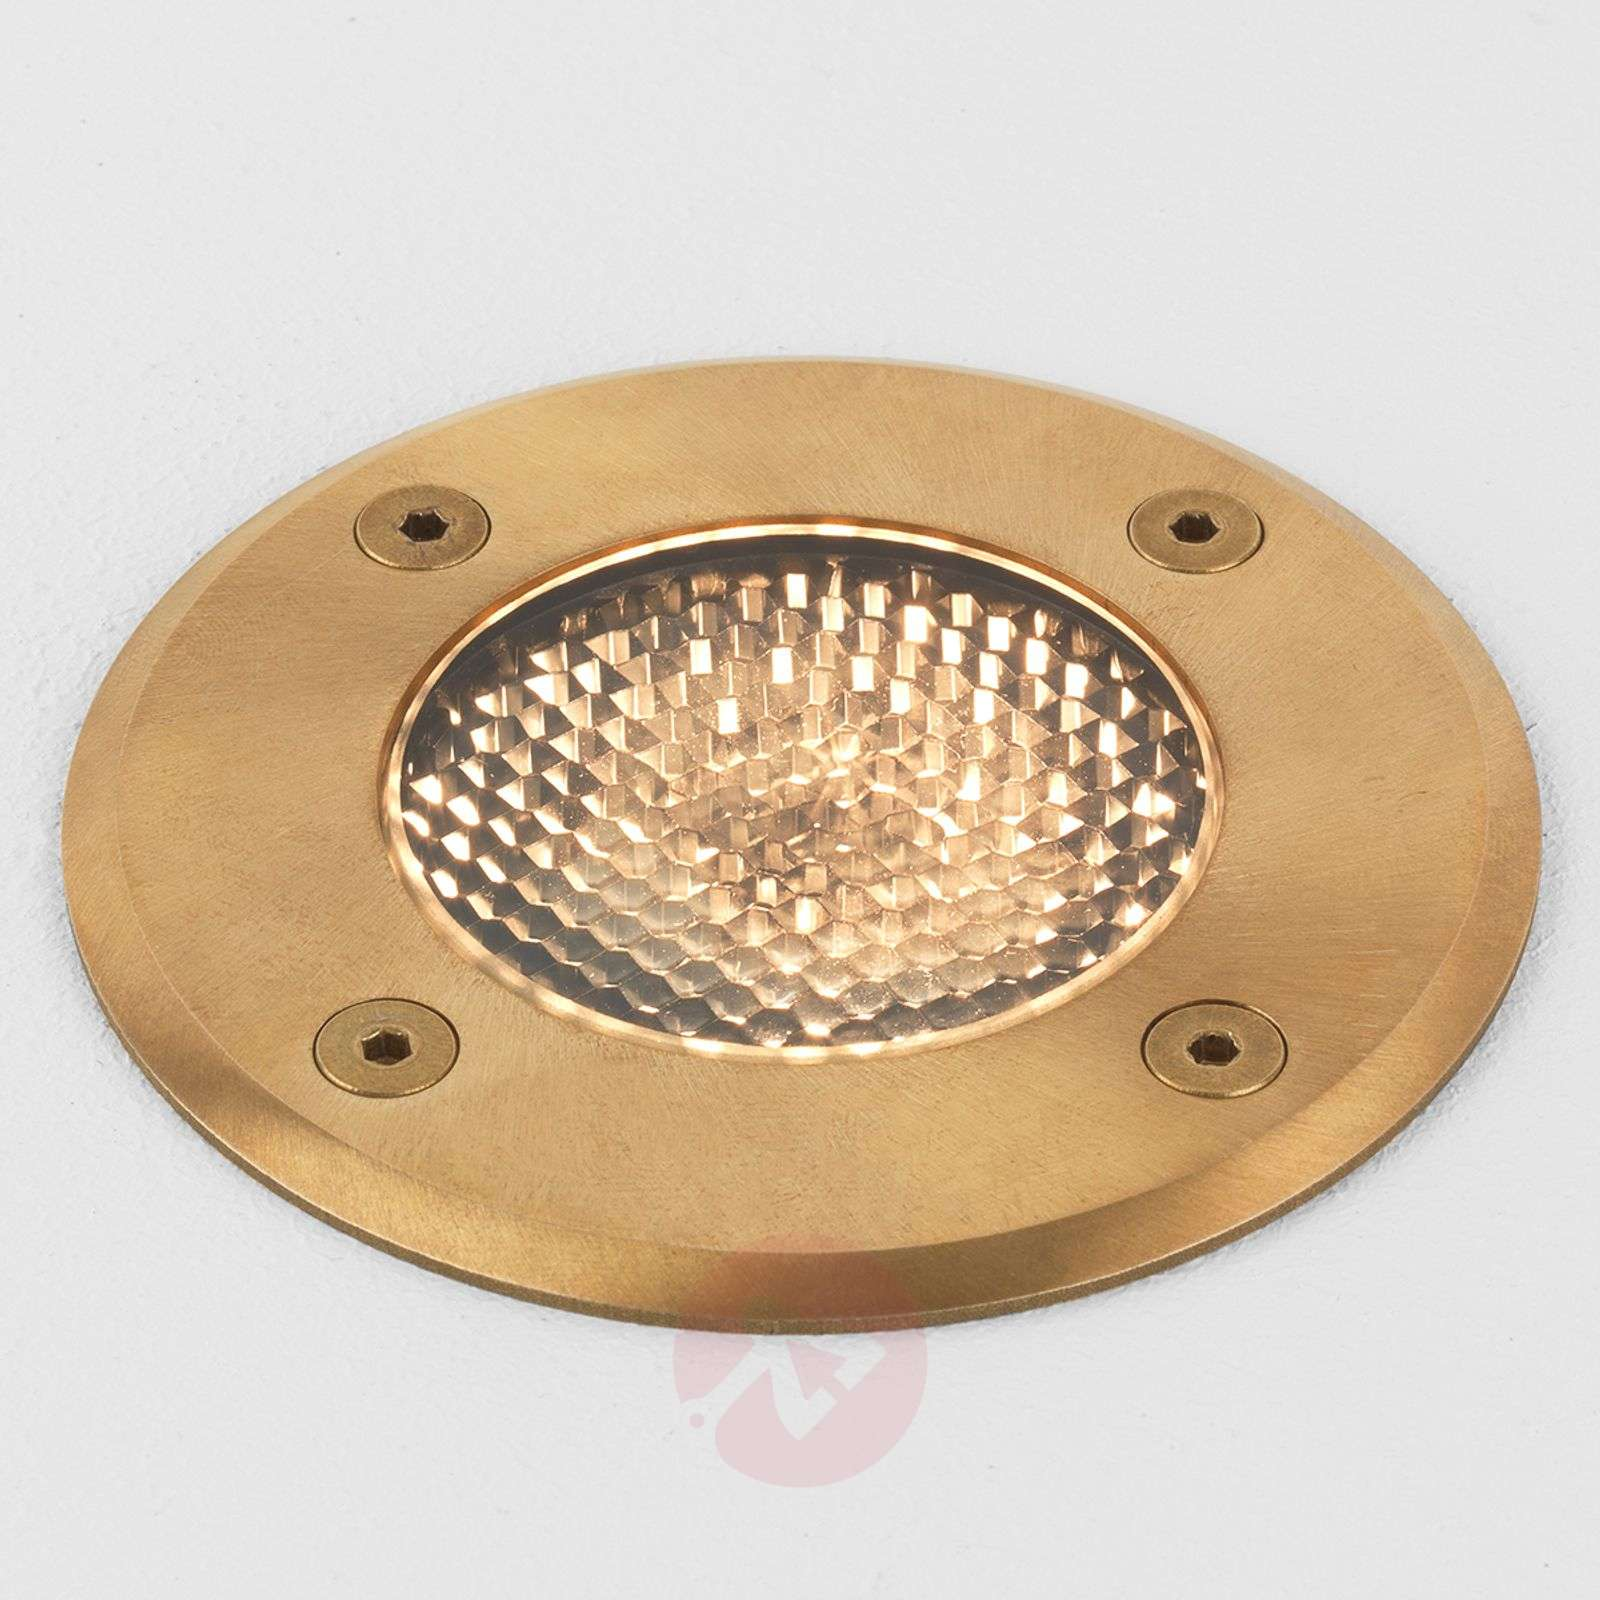 Seawater-resistant recessed floor light Gramos-1020566-01